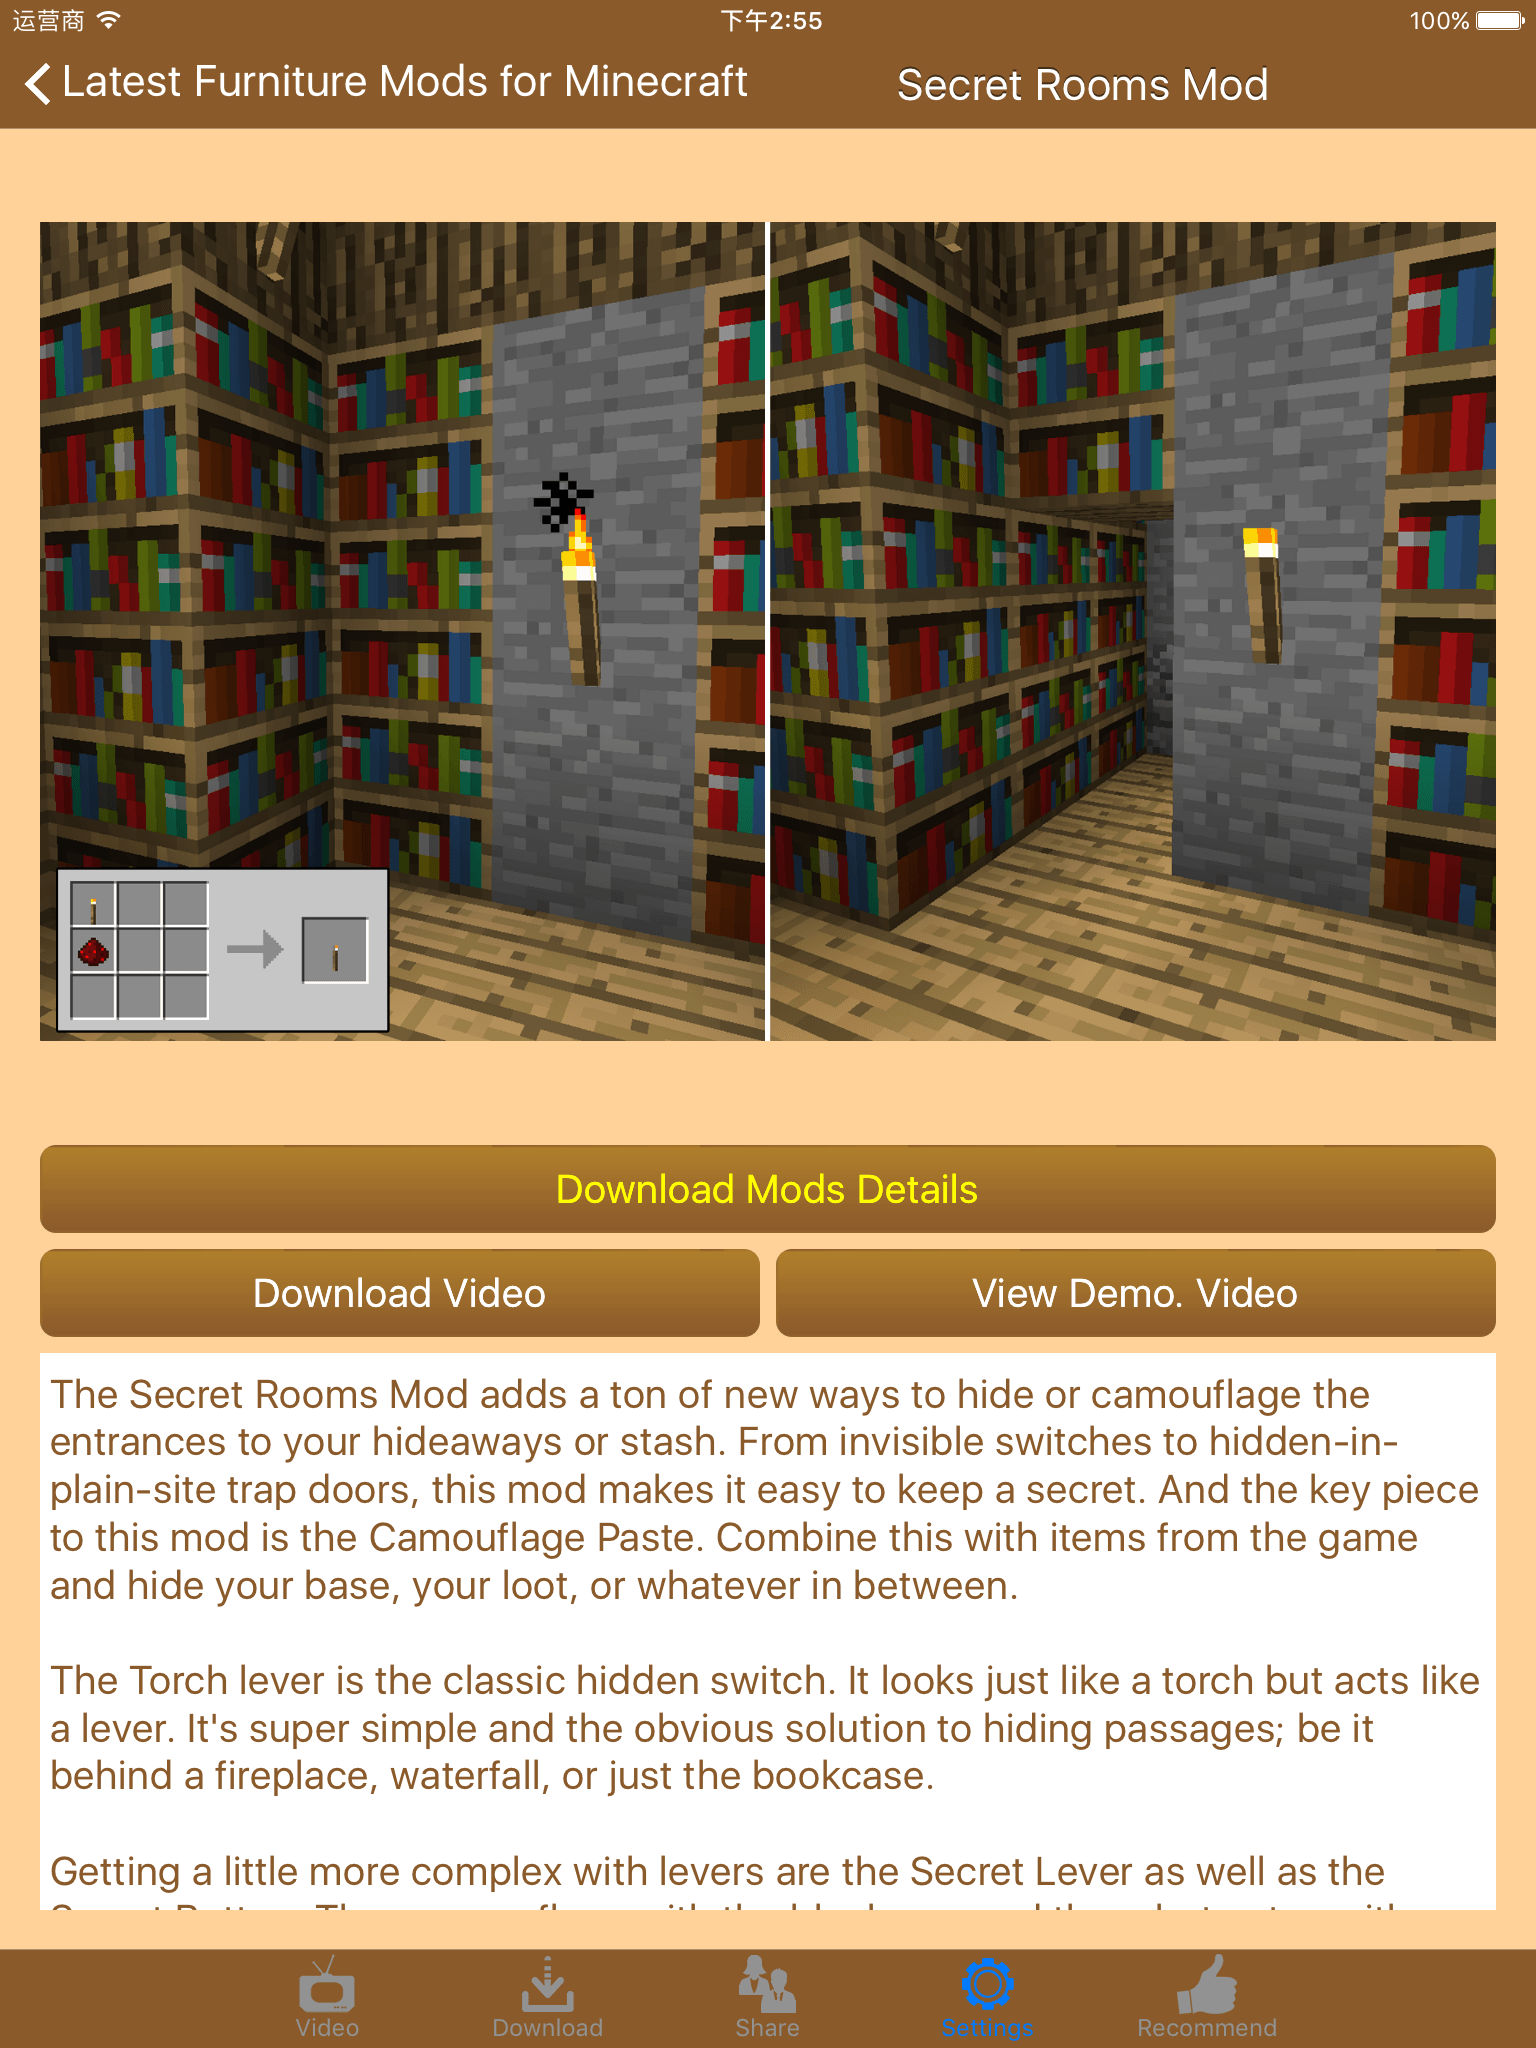 Latest Furniture Mods for Minecraft (PC) App Ranking and Store Data